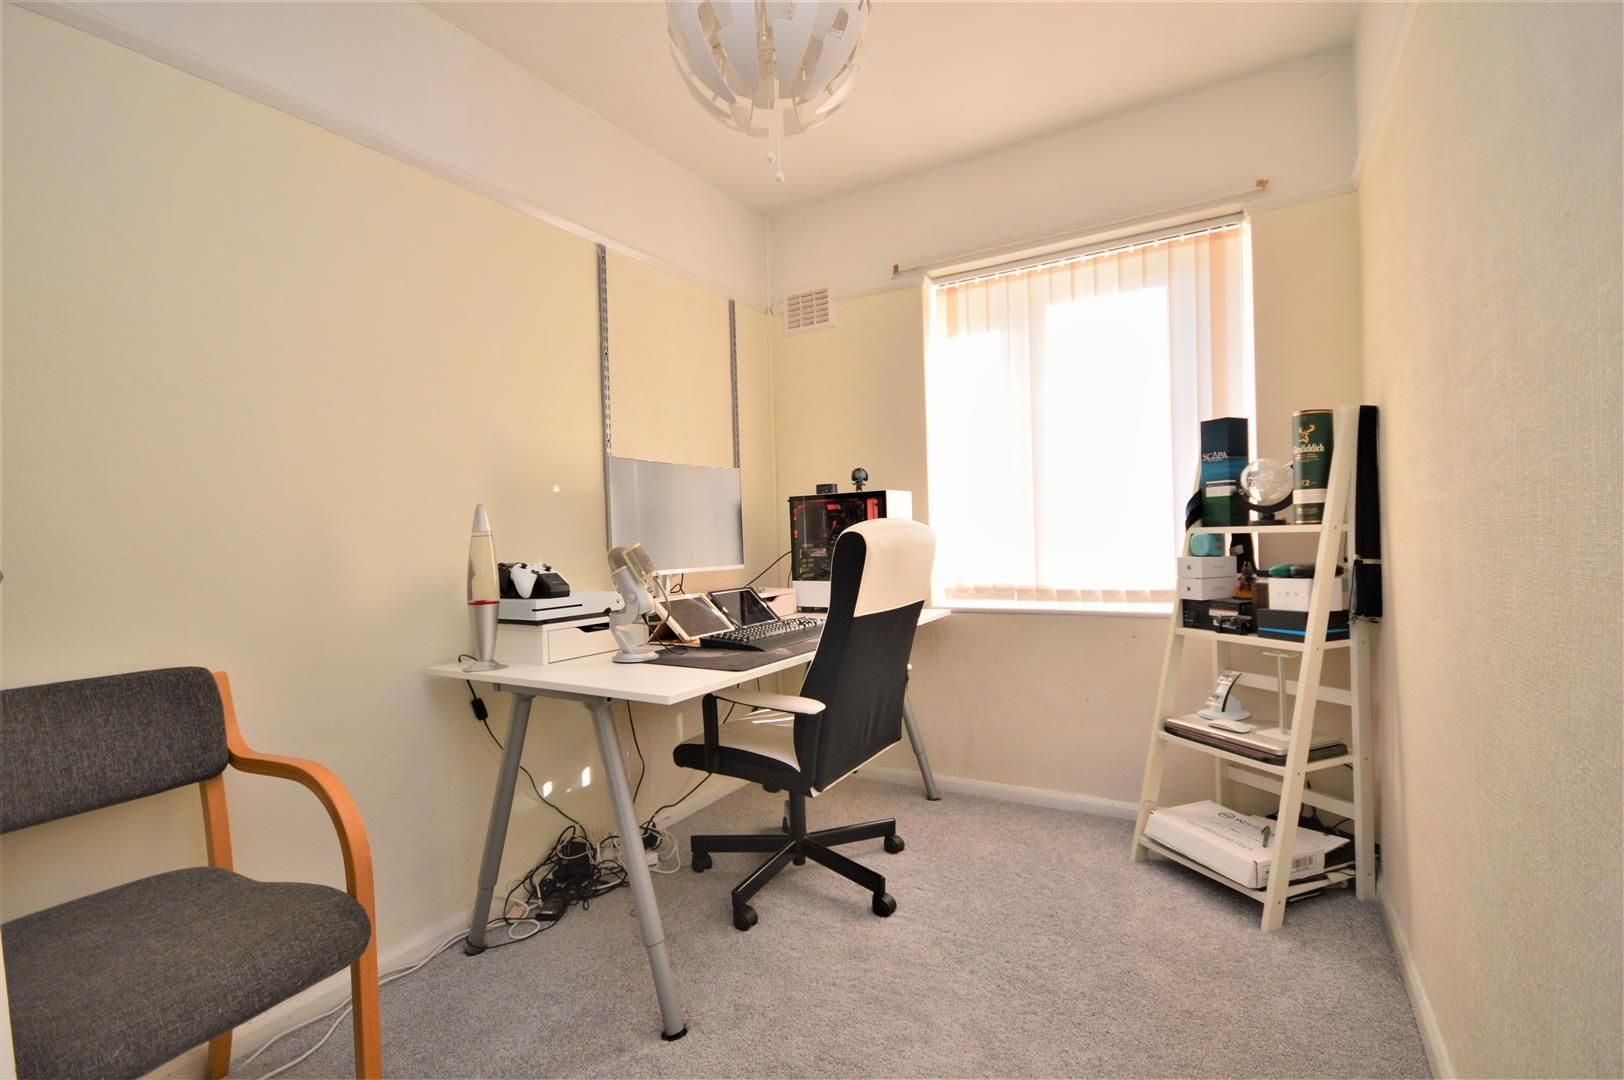 3 bed end-of-terrace for sale in Hereford 12